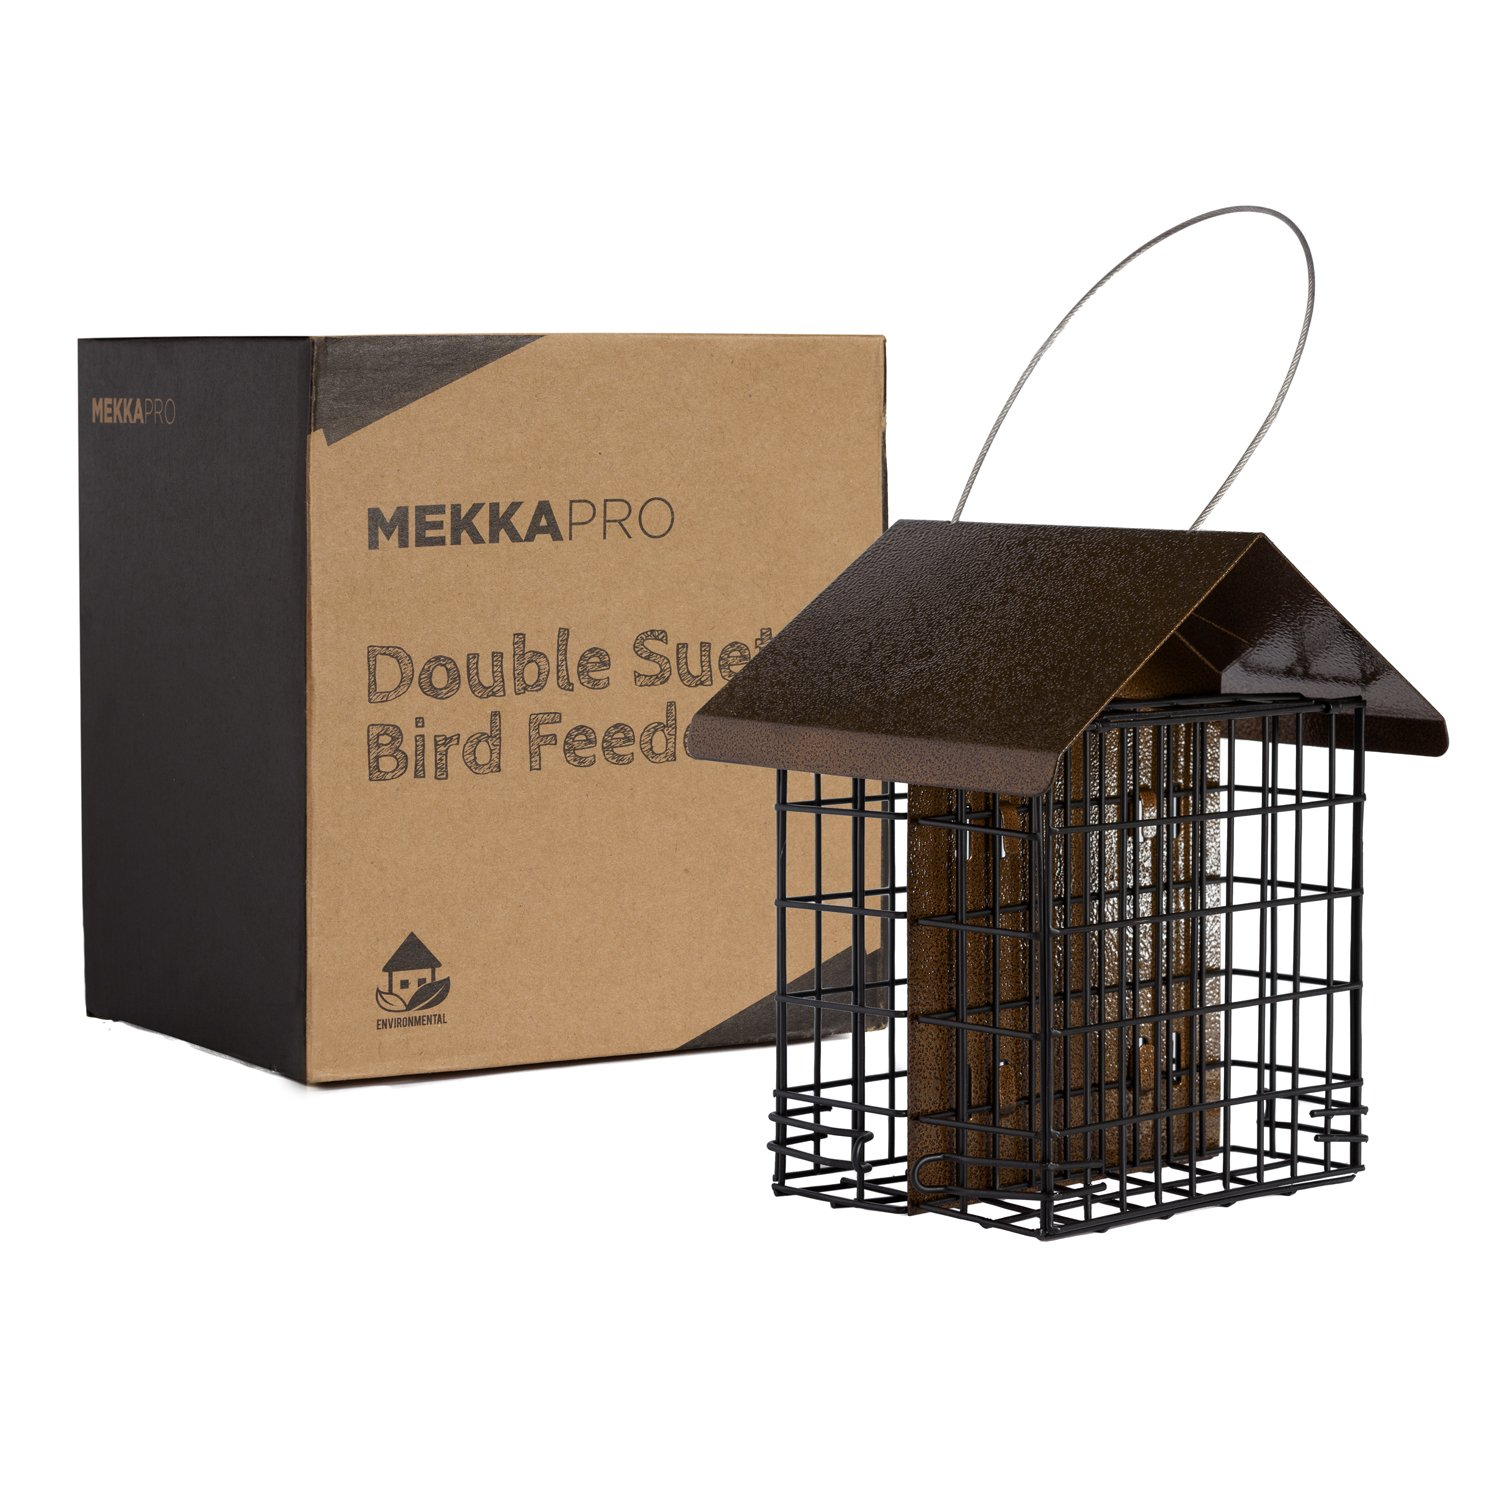 MEKKAPRO Double Suet Wild Bird Feeder with Hanging Metal Roof, Two Suet Capacity, Bird Feed Recommended